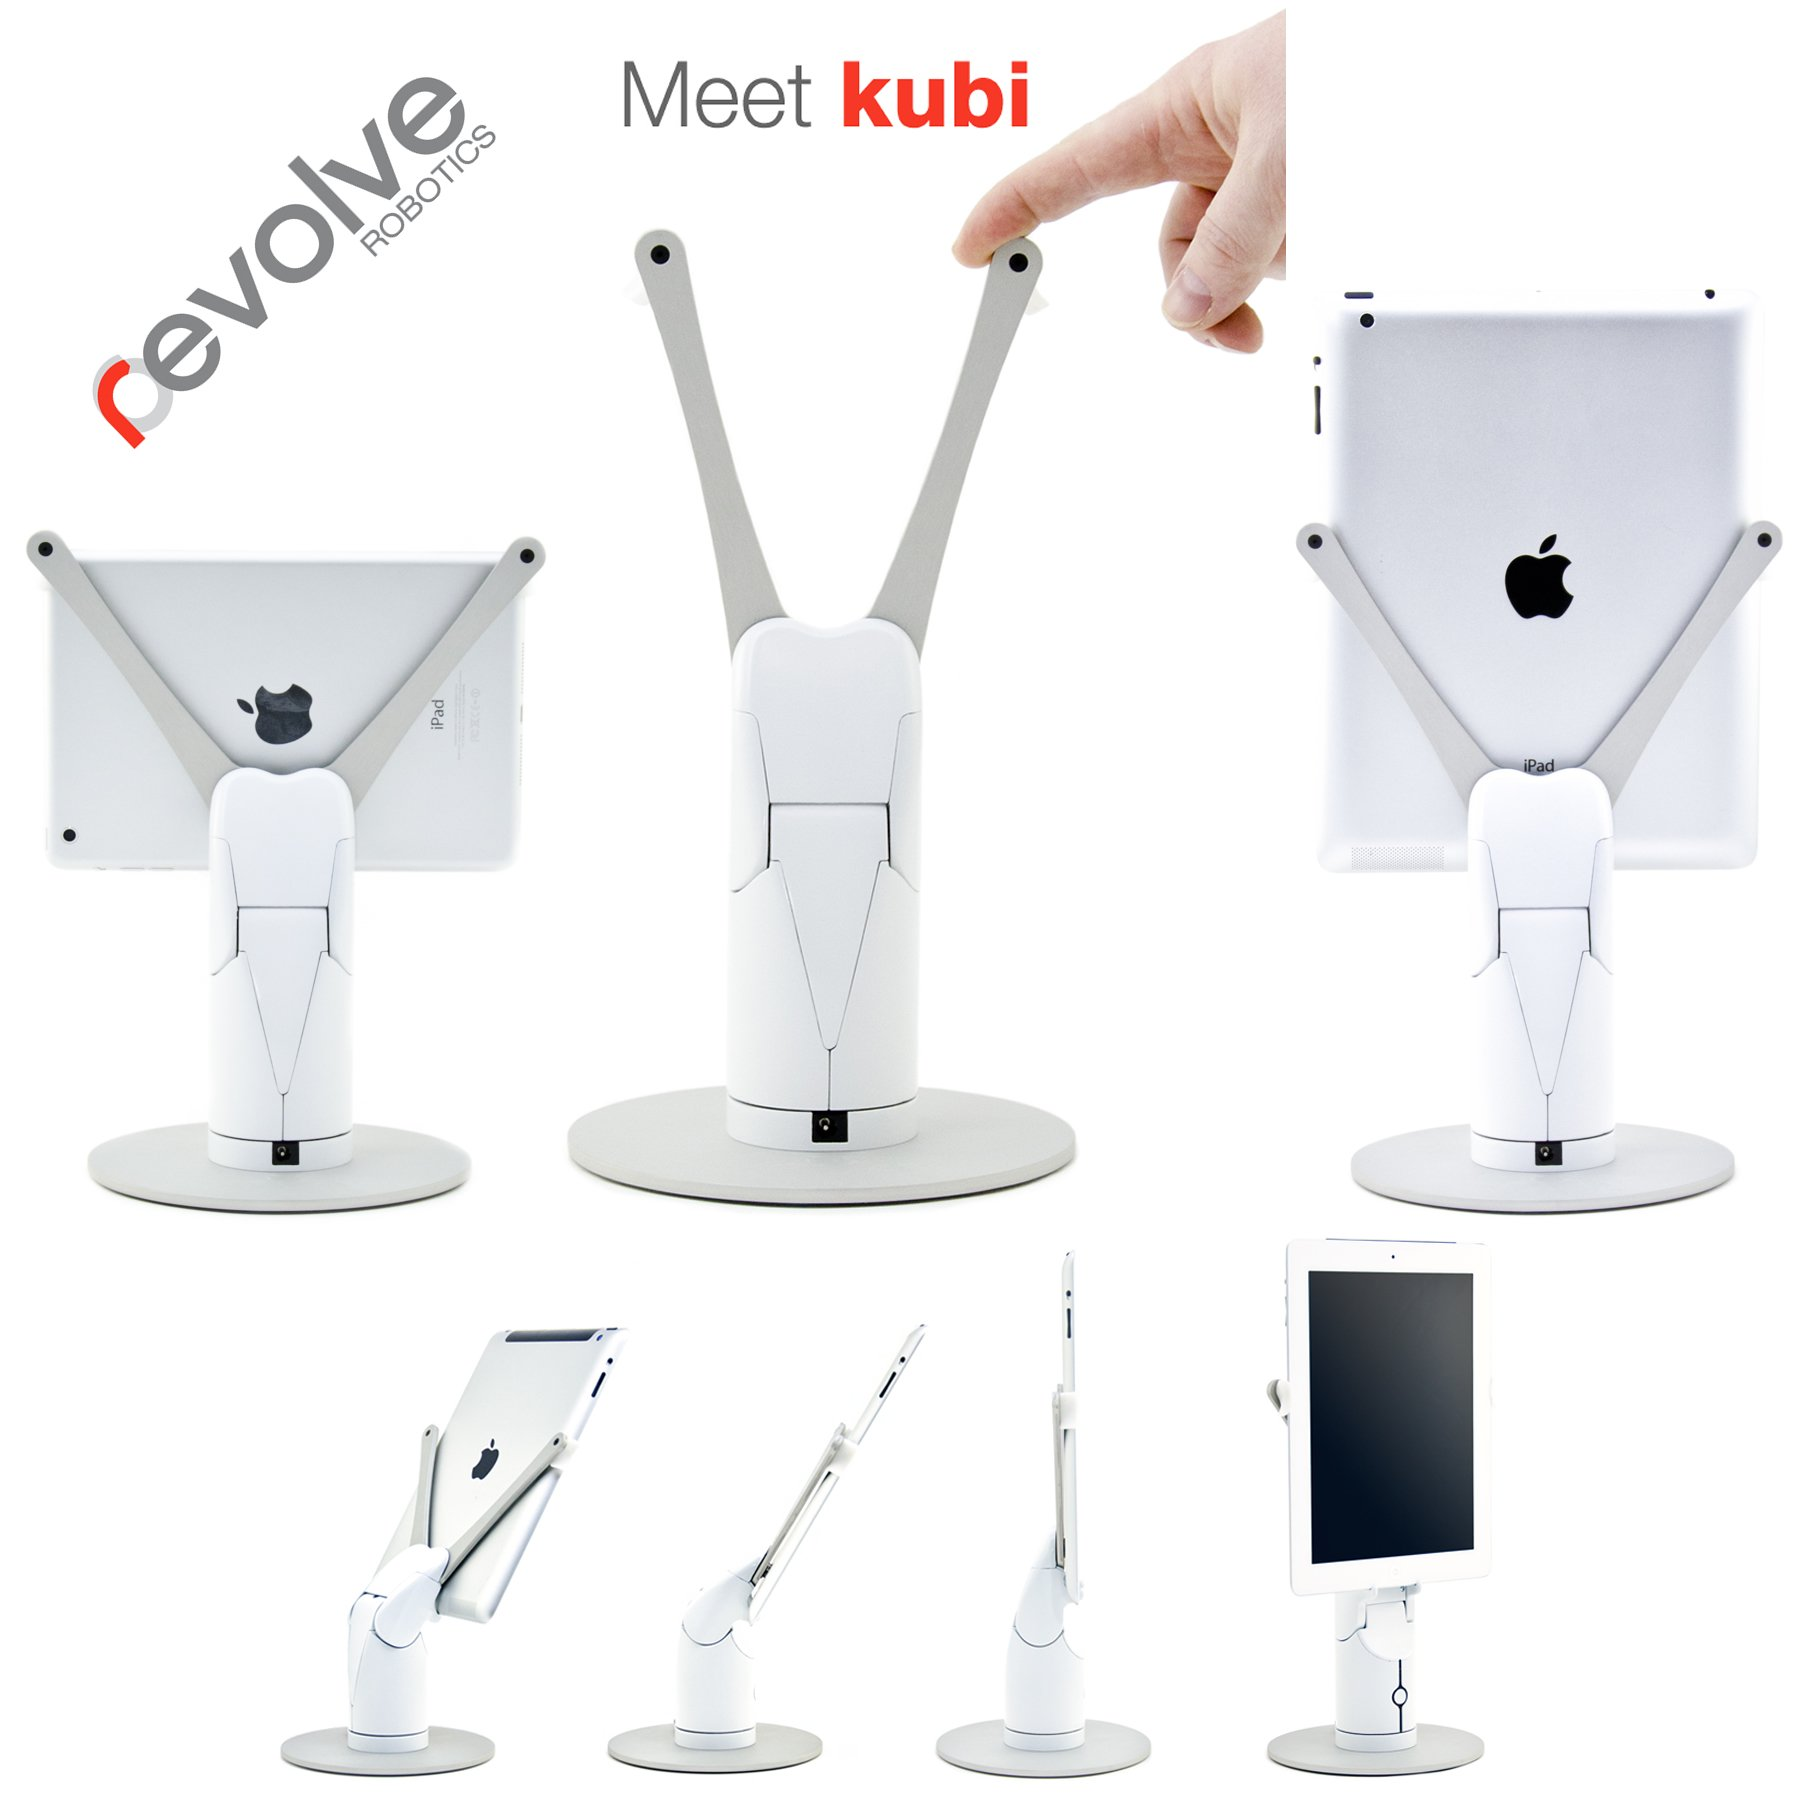 KUBI Secure iPad Air/Air2 Telepresence Robot with Keyed Kensington-style lock with 3' cable, Web controlled Video Conferencing Robotic Desktop Tablet Stand with Far End Camera Controls by Kubi